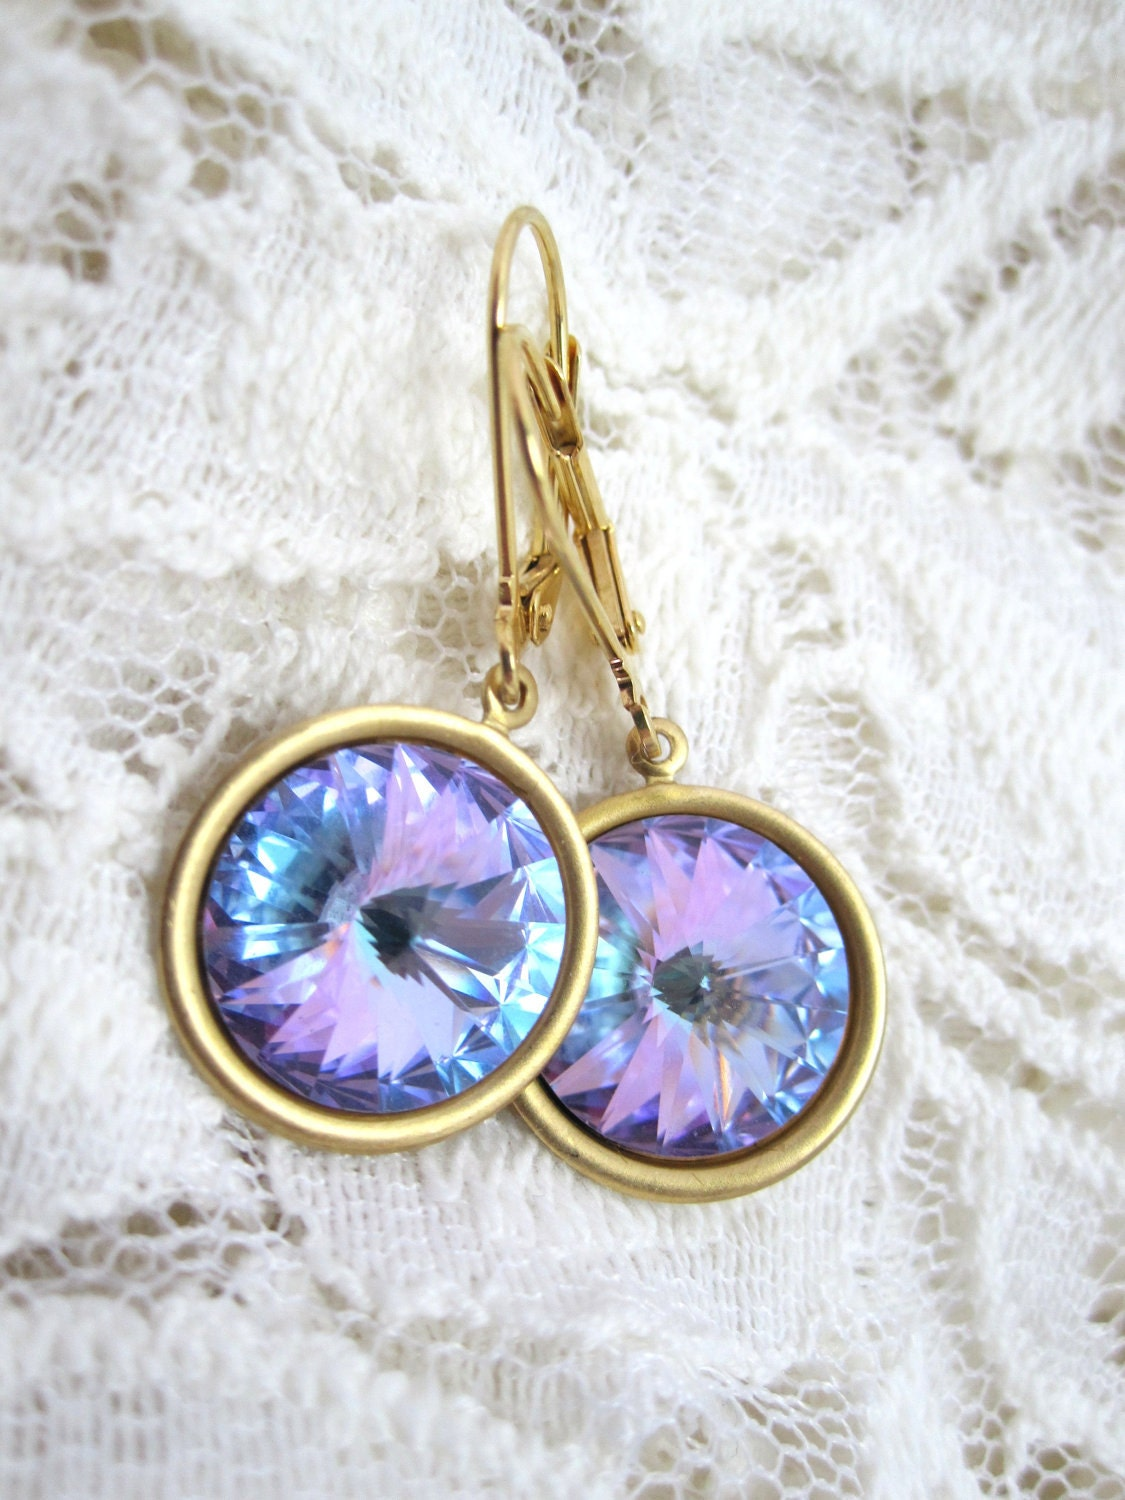 Swarovski vitrail earrings - light lavender vitral rivolis on gold leverbacks - LazyOwlBoutique